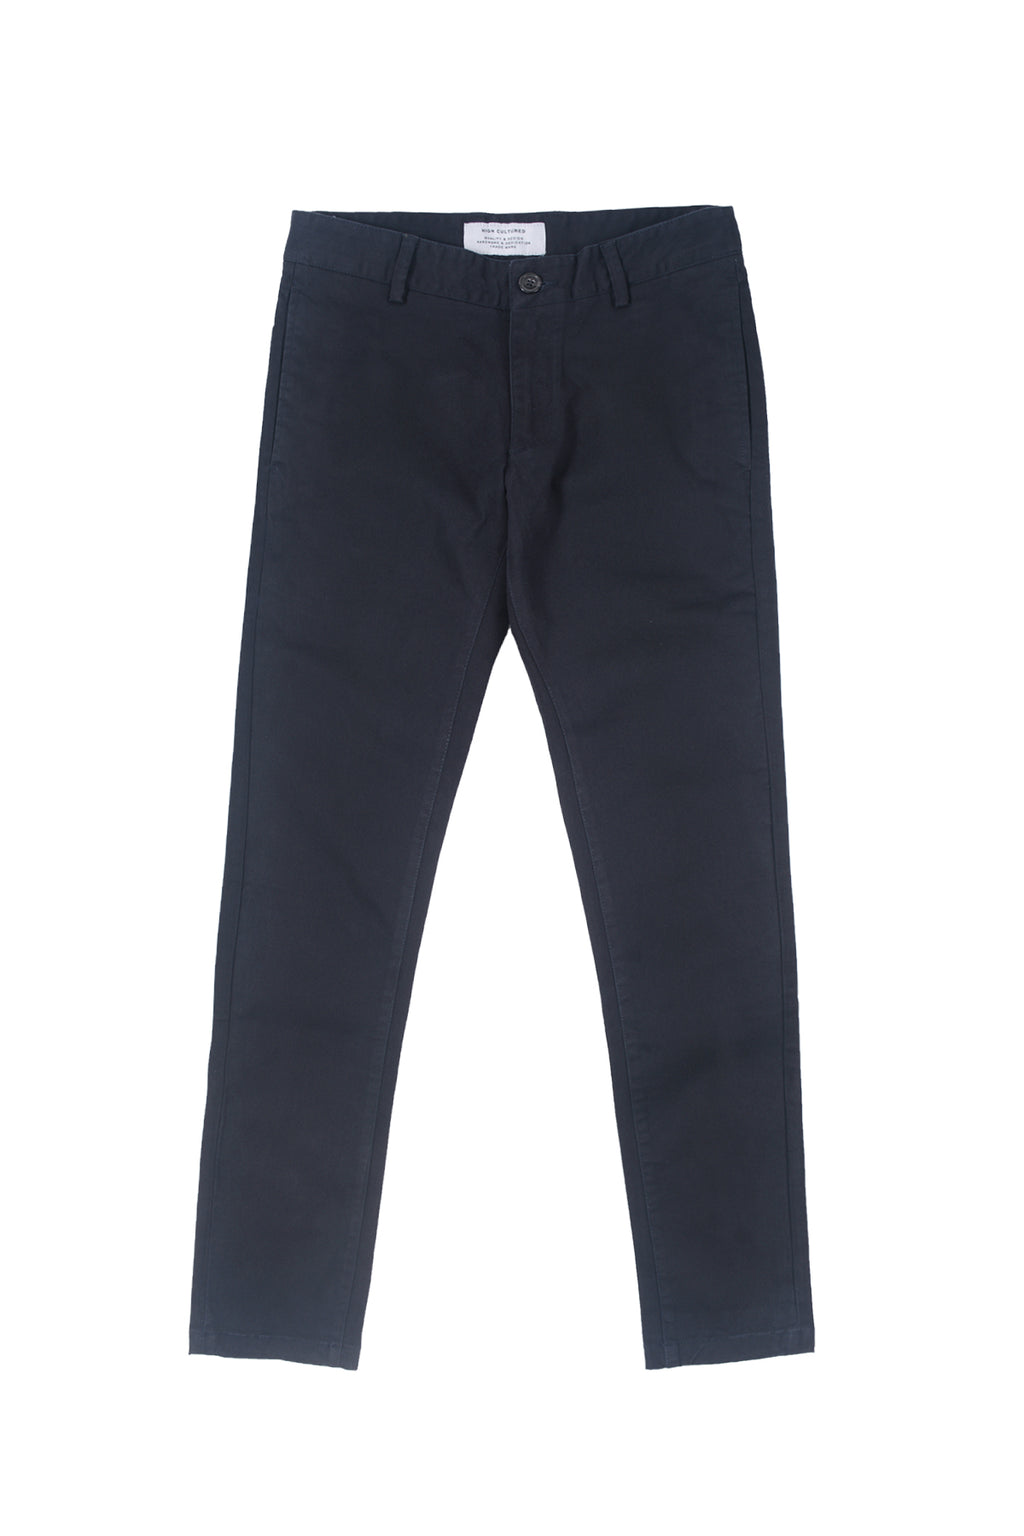 SLIM-FIT HEAVY CHINO LONG PANT | NAVY - 123